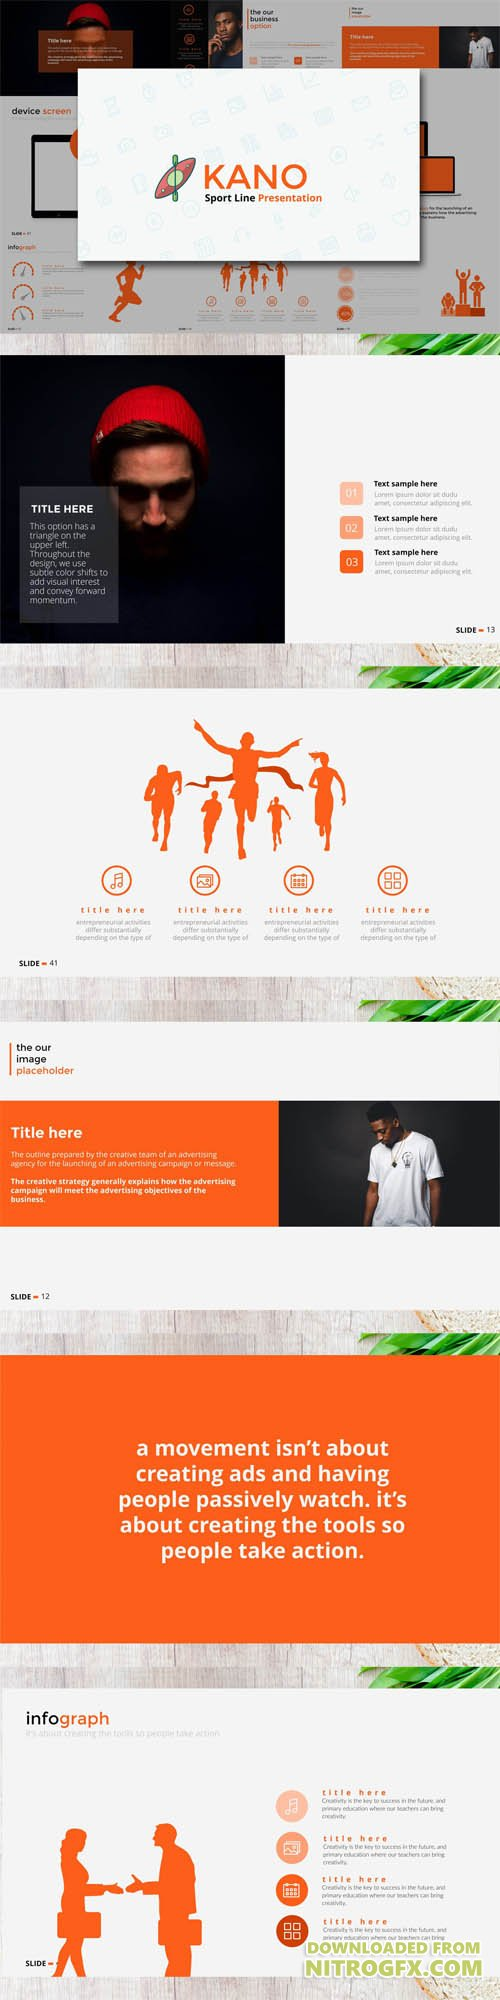 KANO Creative Powerpoint